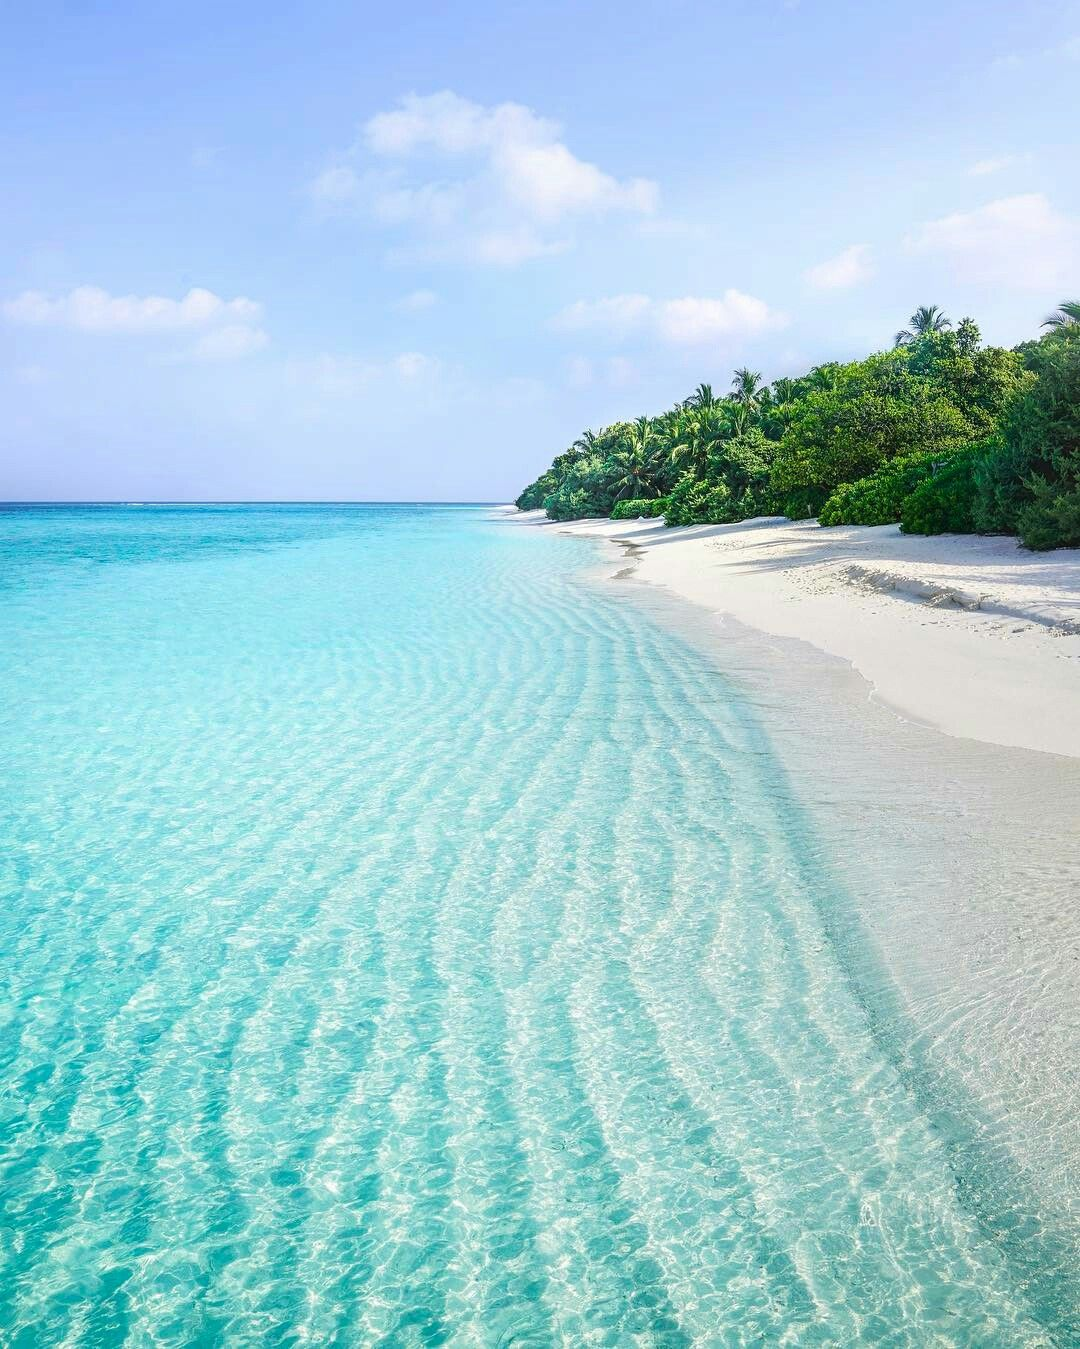 Maldives Island Beaches: Idea By Chef Jeff On Photography - Watery